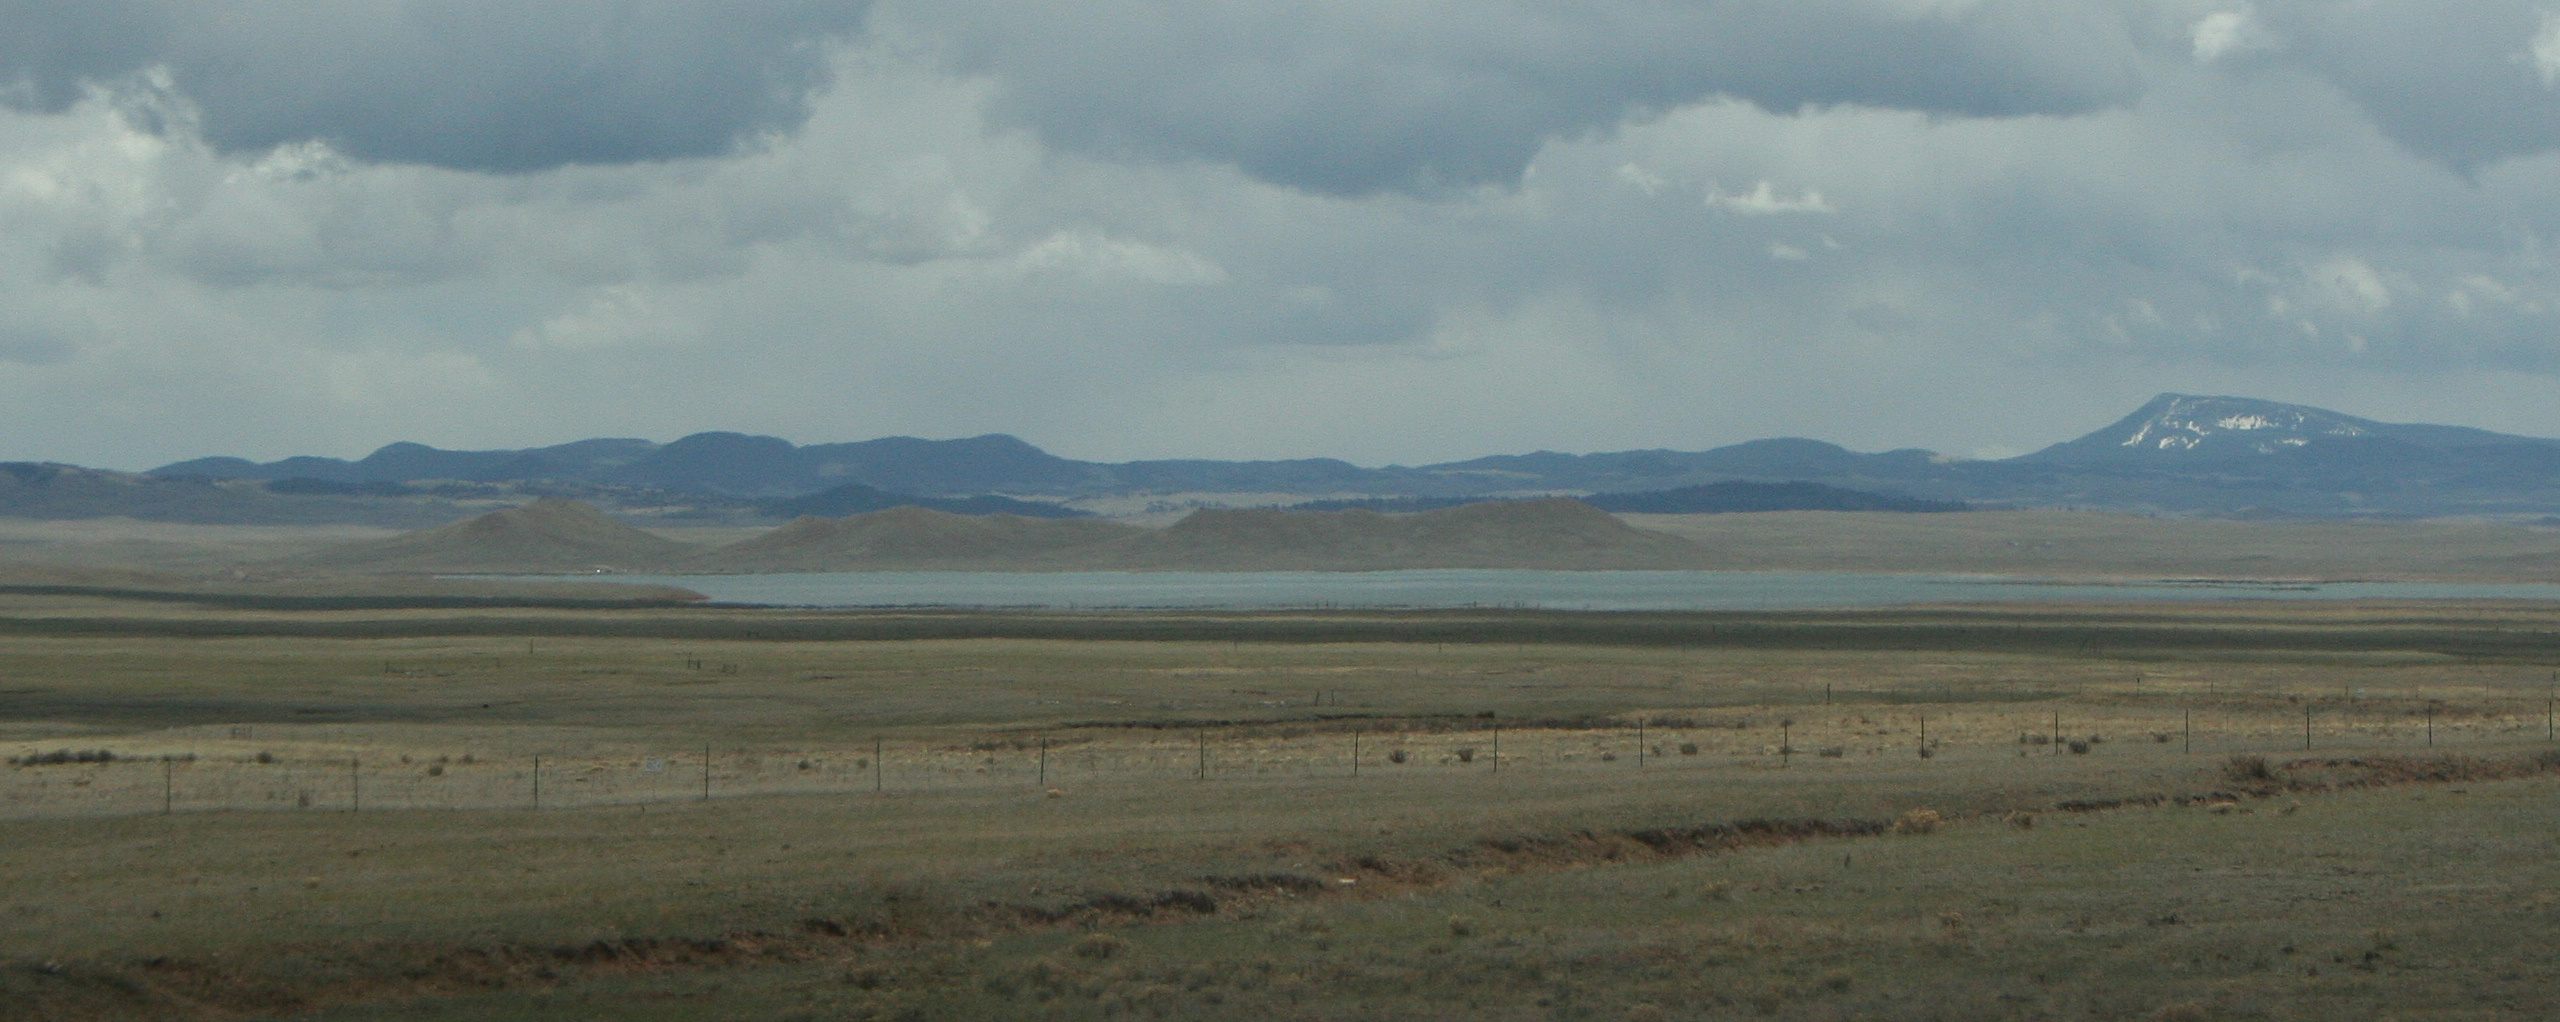 Antero Reservoir from Highway 285 / By Jeffrey Beall - Own work, CC BY-SA 3.0, https://commons.wikimedia.org/w/index.php?curid=10481916